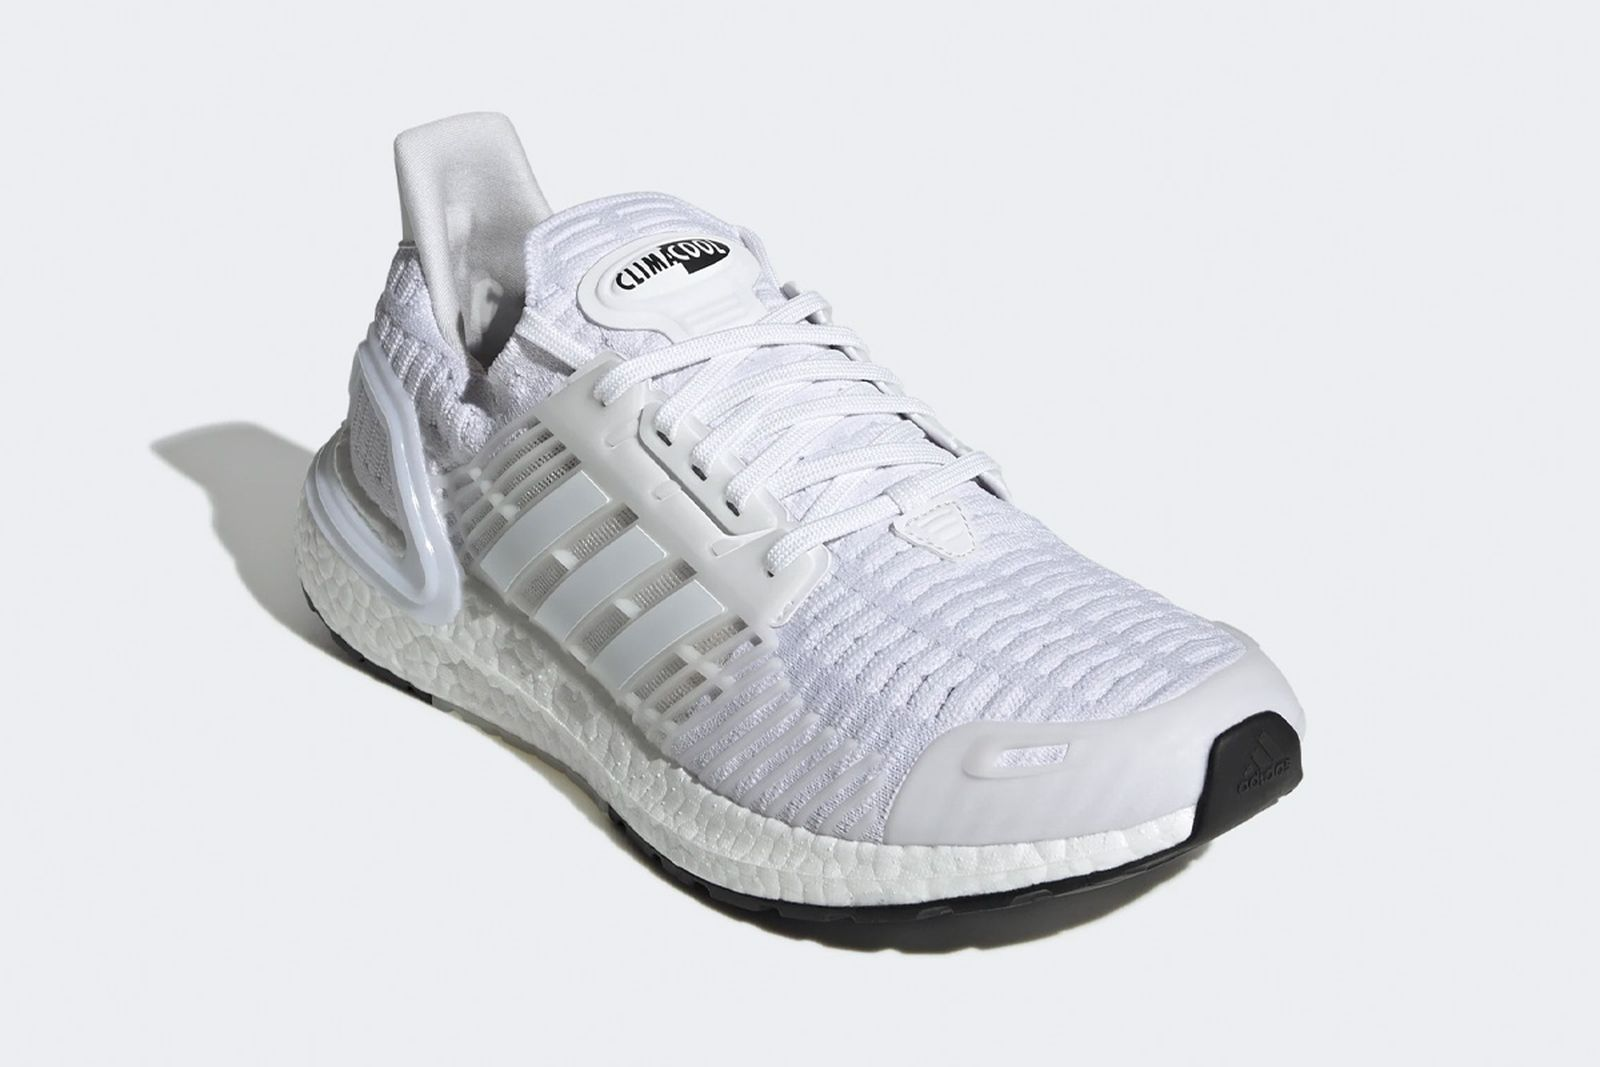 adidas-ultraboost-clima-cool-release-date-price-04